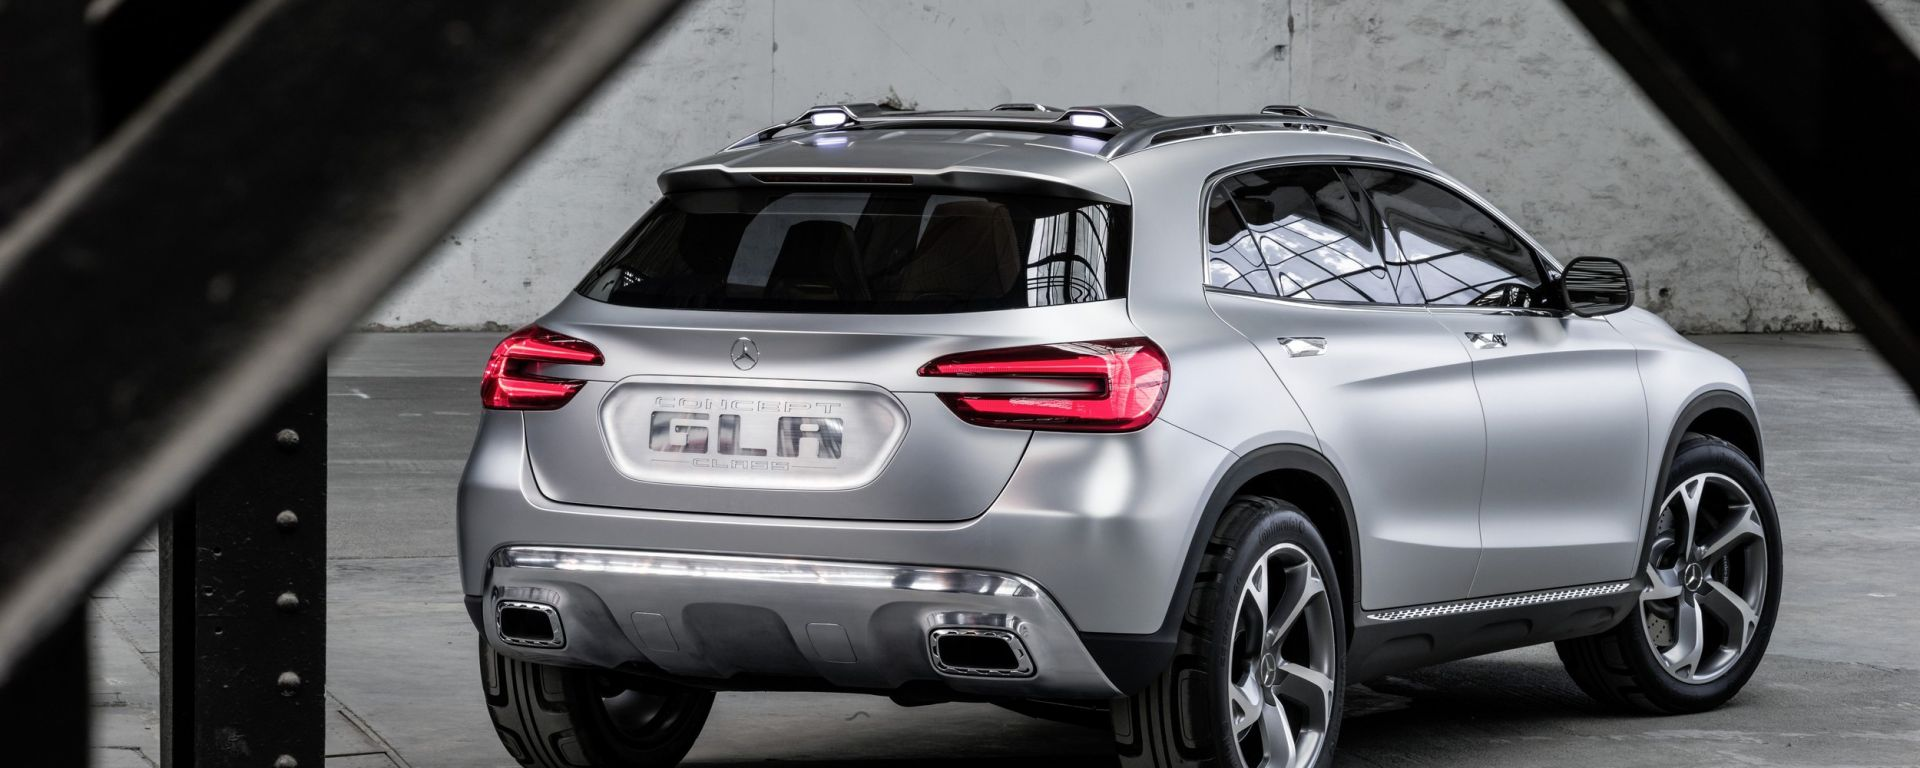 Mercedes GLA Concept, nuove foto e video